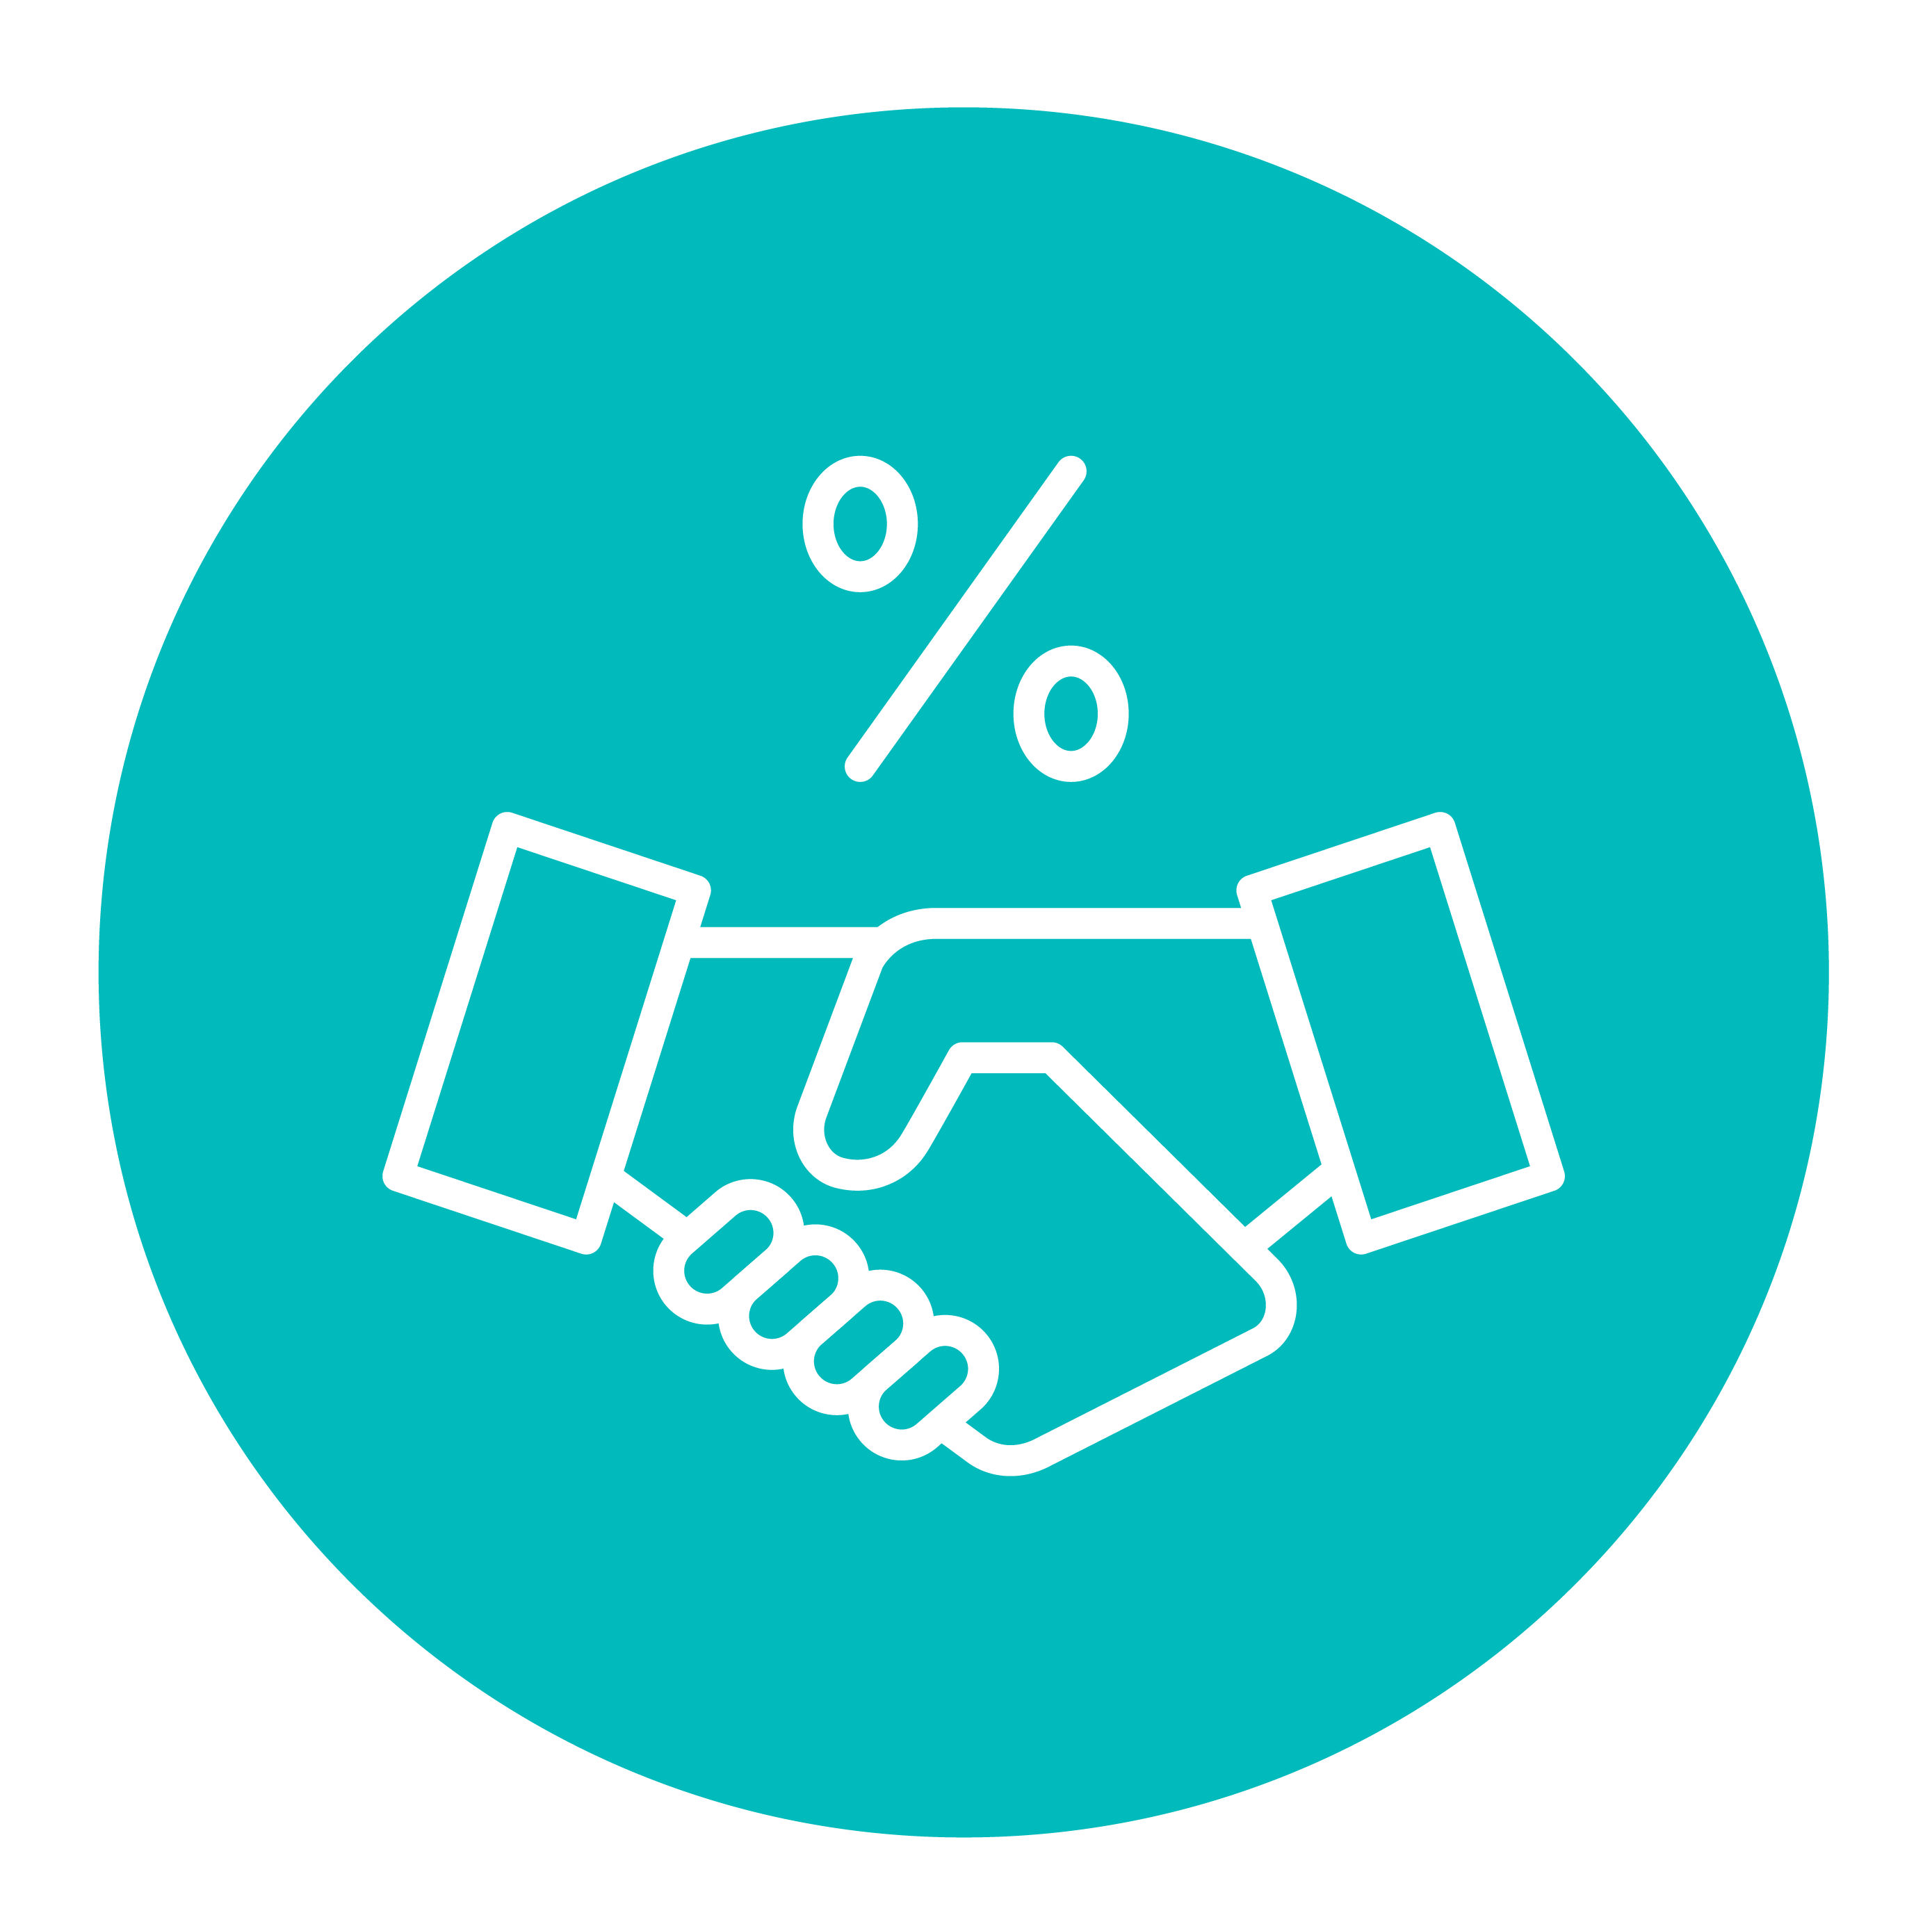 Icon of a percentage sign above a handshake